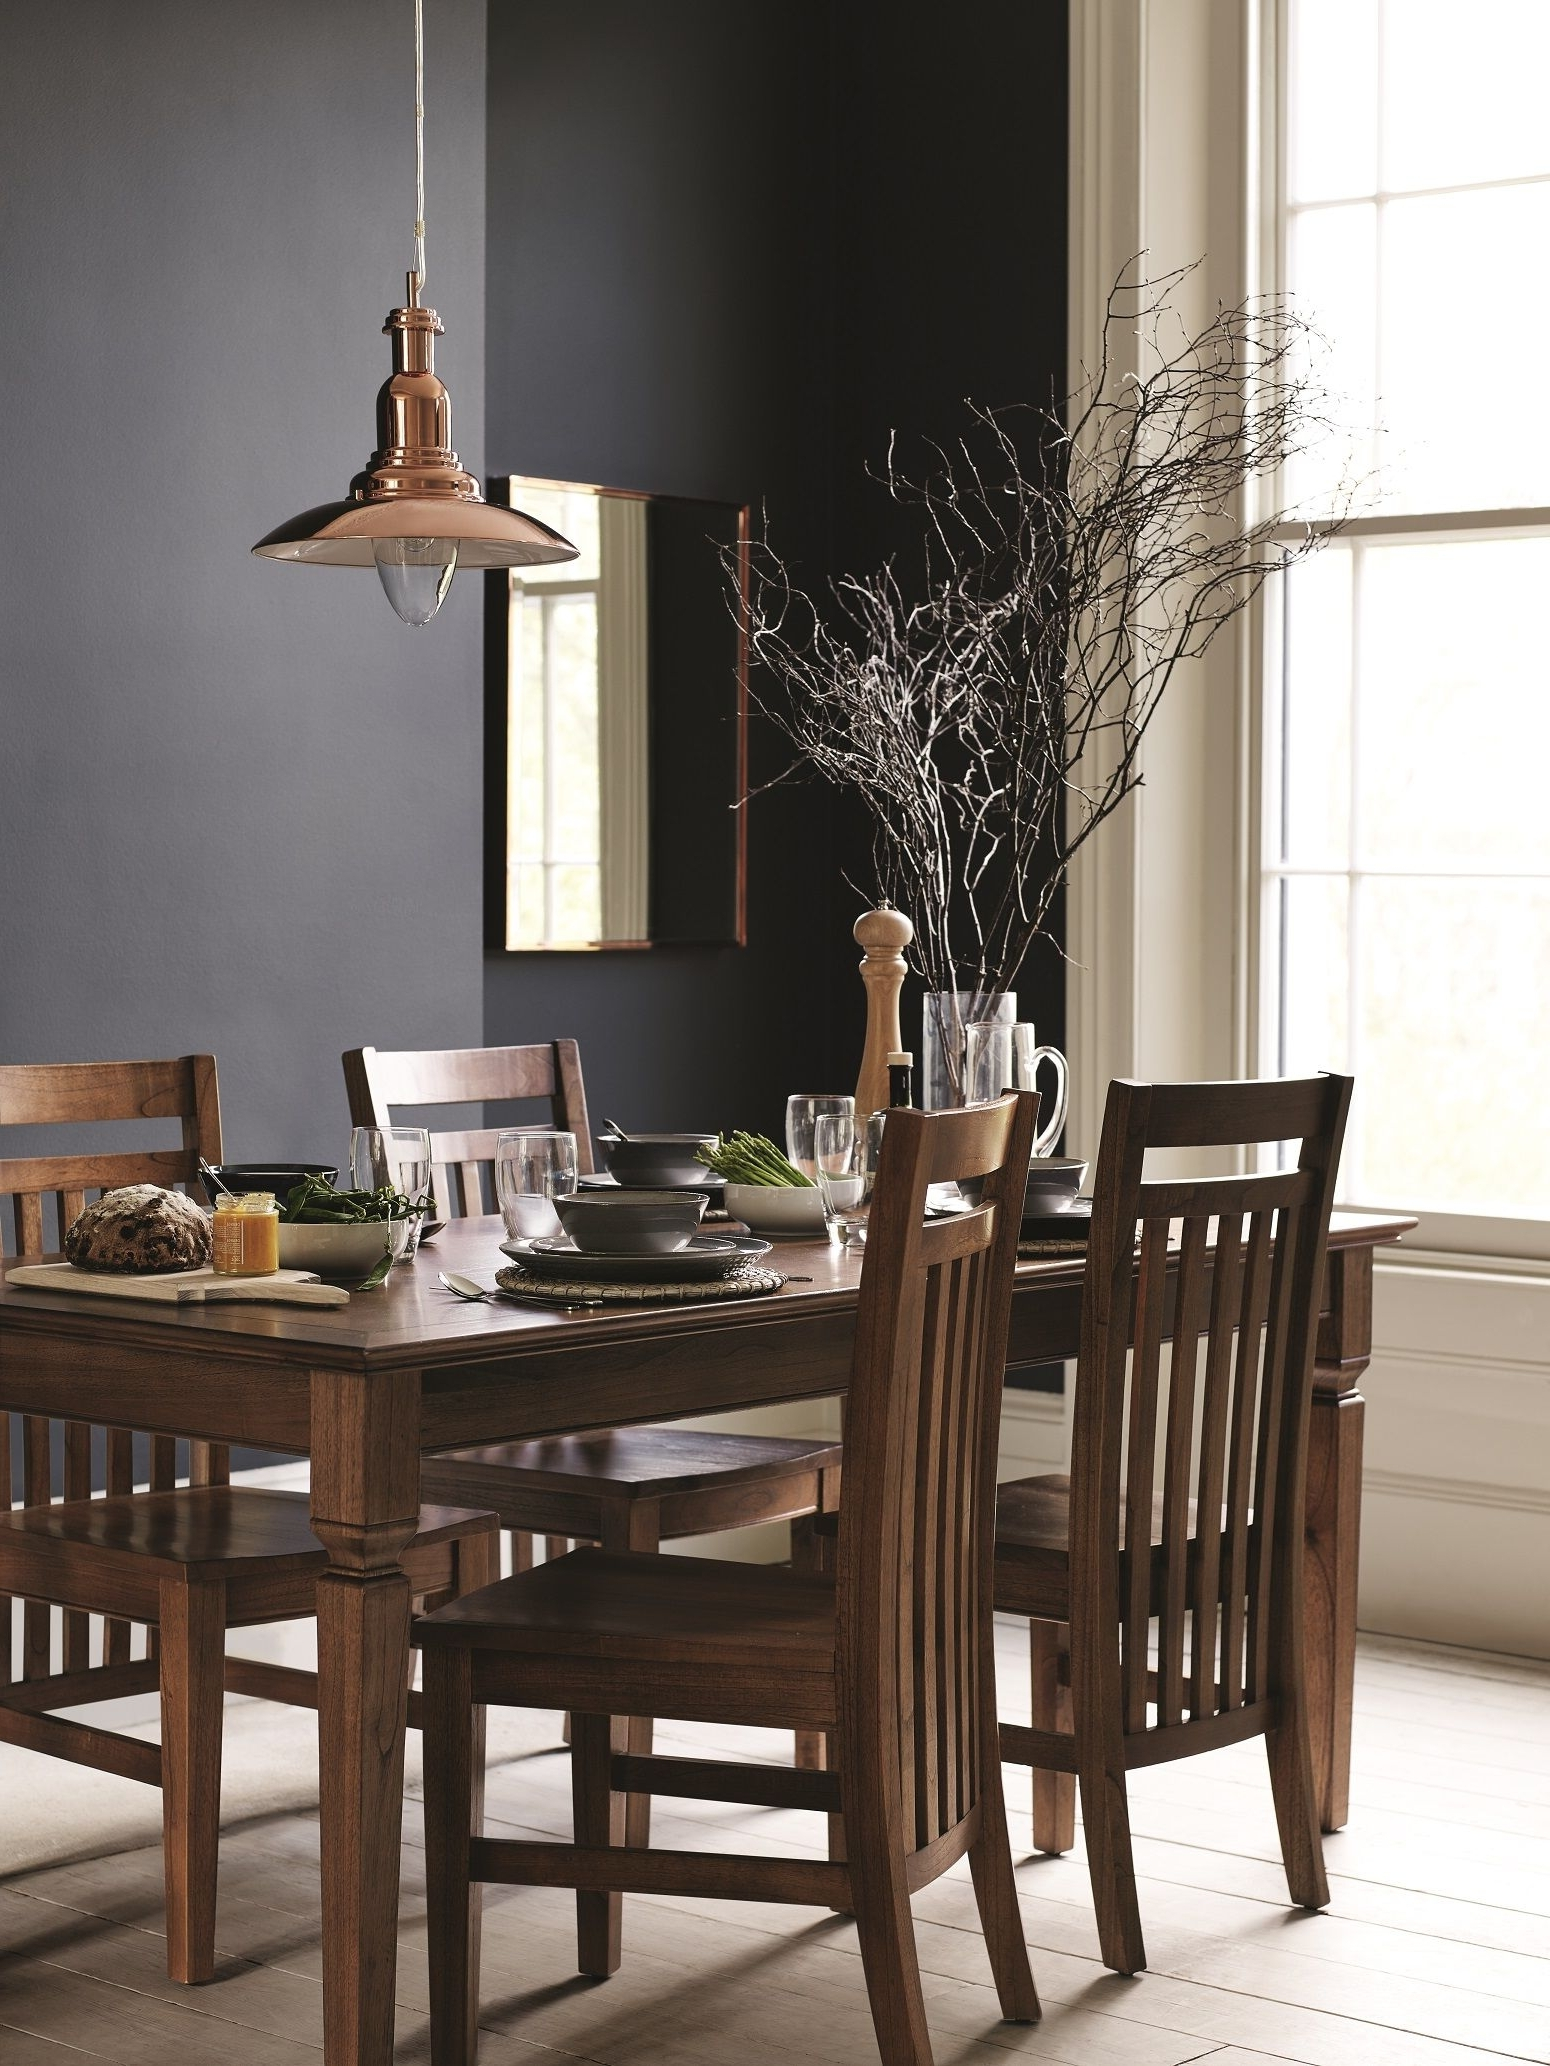 Find The Perfect Dining Table And Chairs From Our Range Of Oak Intended For Famous Oak And Glass Dining Tables And Chairs (View 7 of 25)